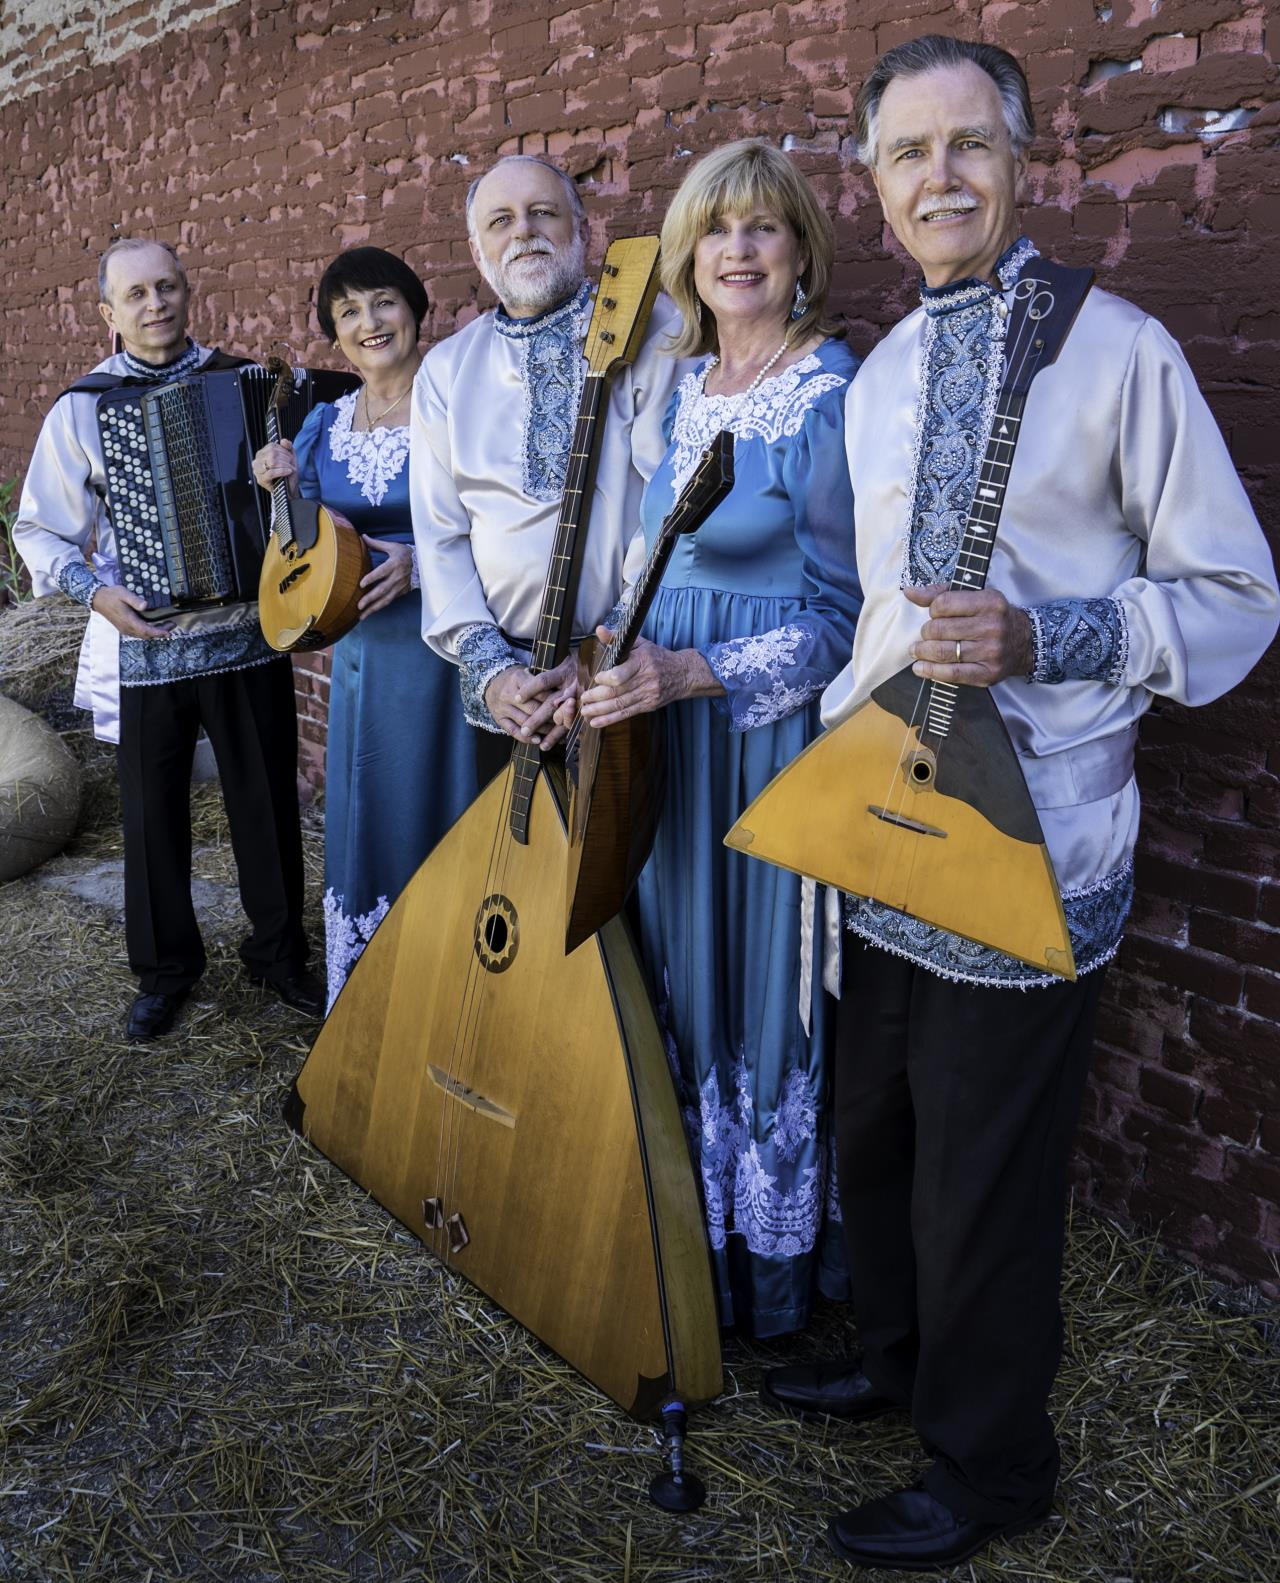 Firebird Balalaika Ensemble